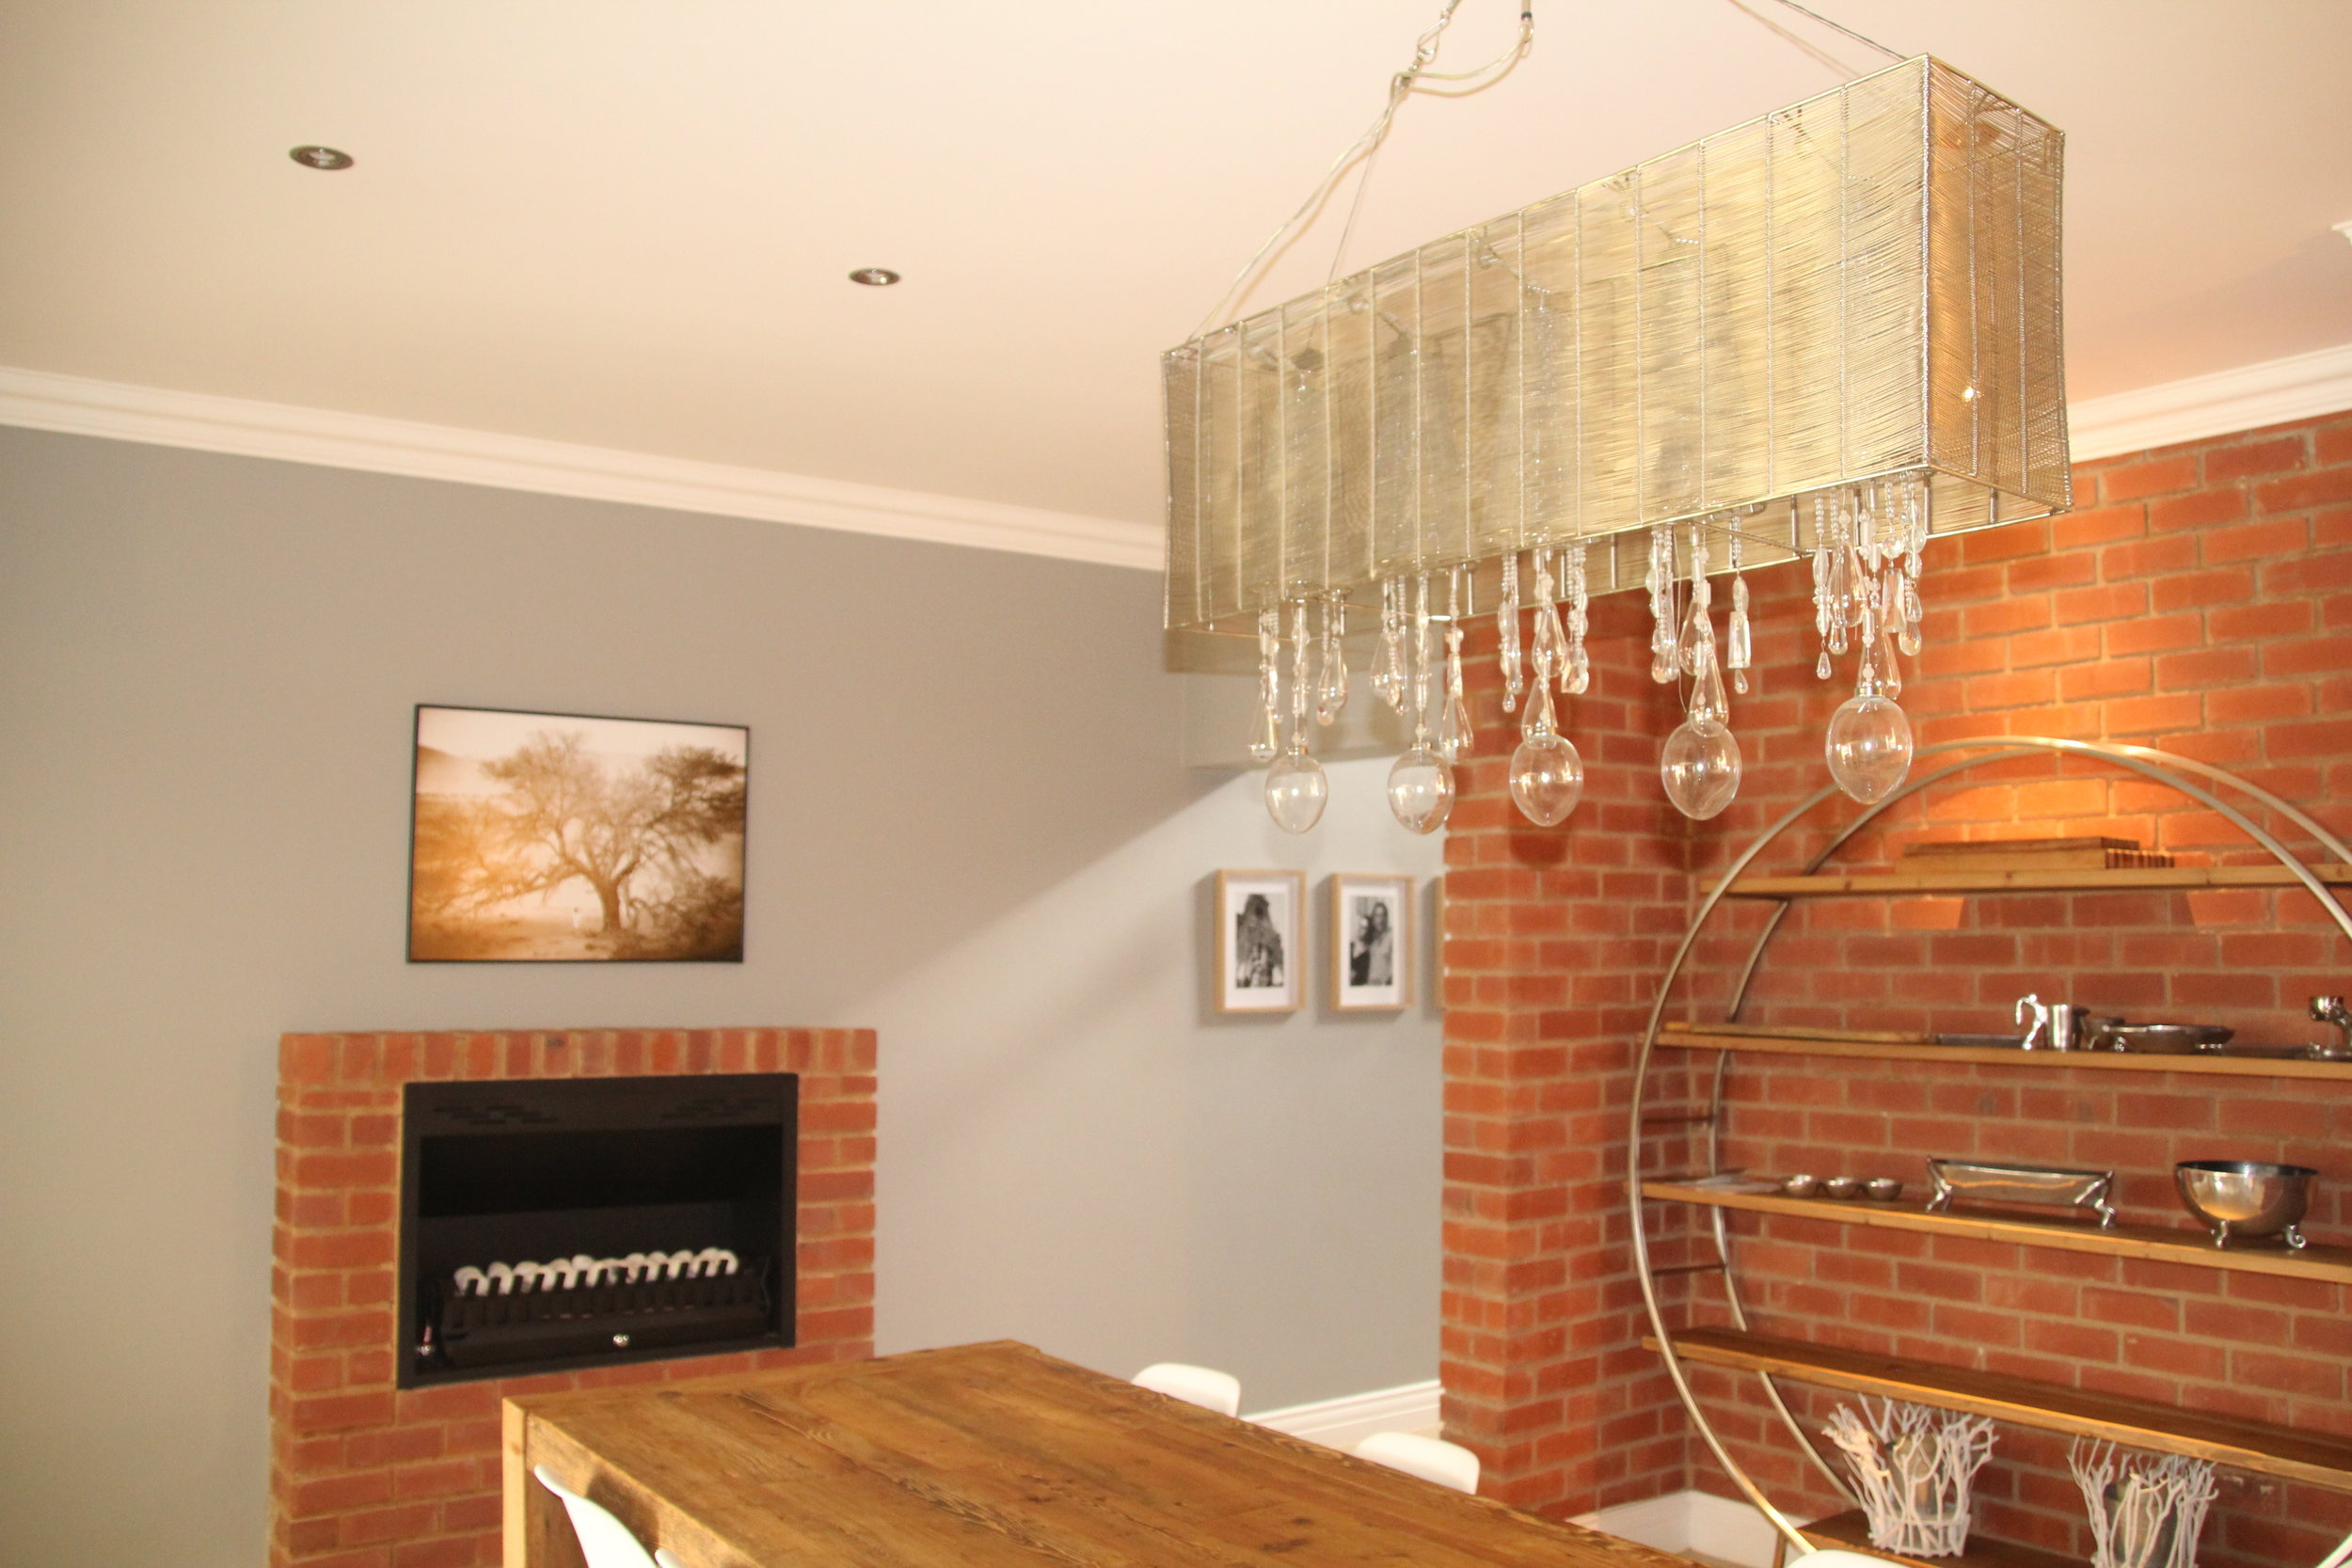 The dining room is seperated from the entrance hall by means of a partition wall while being well integrated with the rest of the open plan living space through a walkway.  Warm brick features and wood contrast beautifully with a wire and crystal chandelier and plastic eames chairs.